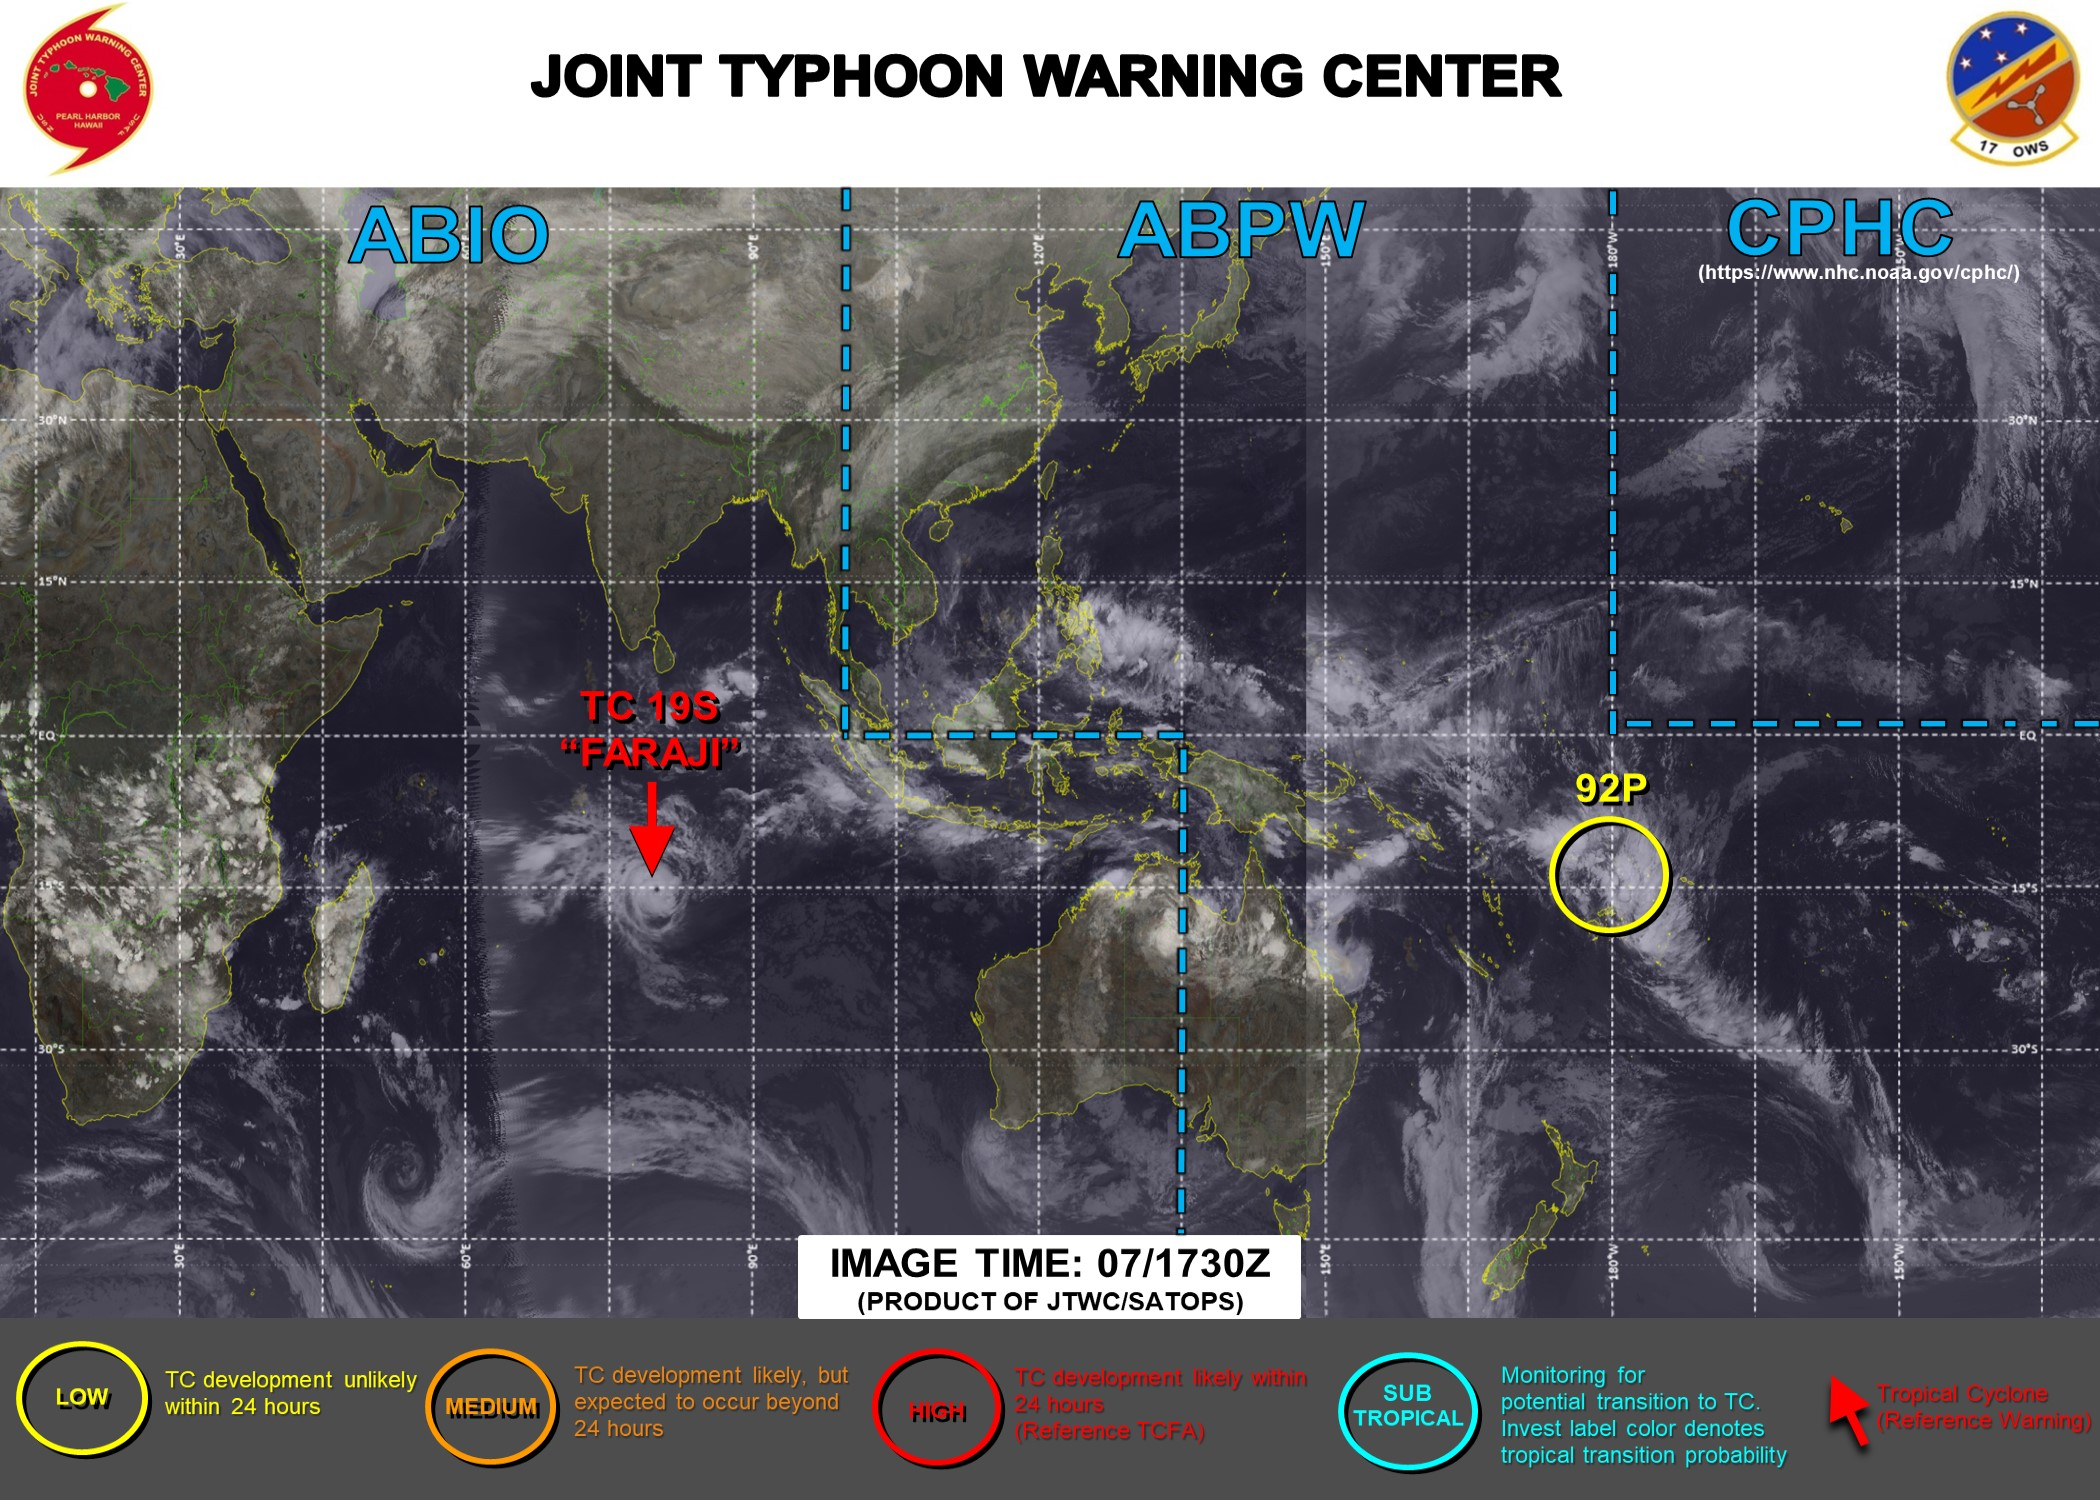 JTWC IS ISSUING 12HOURLY WARNINGS ON TC 19S(FARAJI). 3HOURLY SATELLITE BULLETINS ARE PROVIDED FOR 19S. INVEST 92P IS UNDER WATCH.